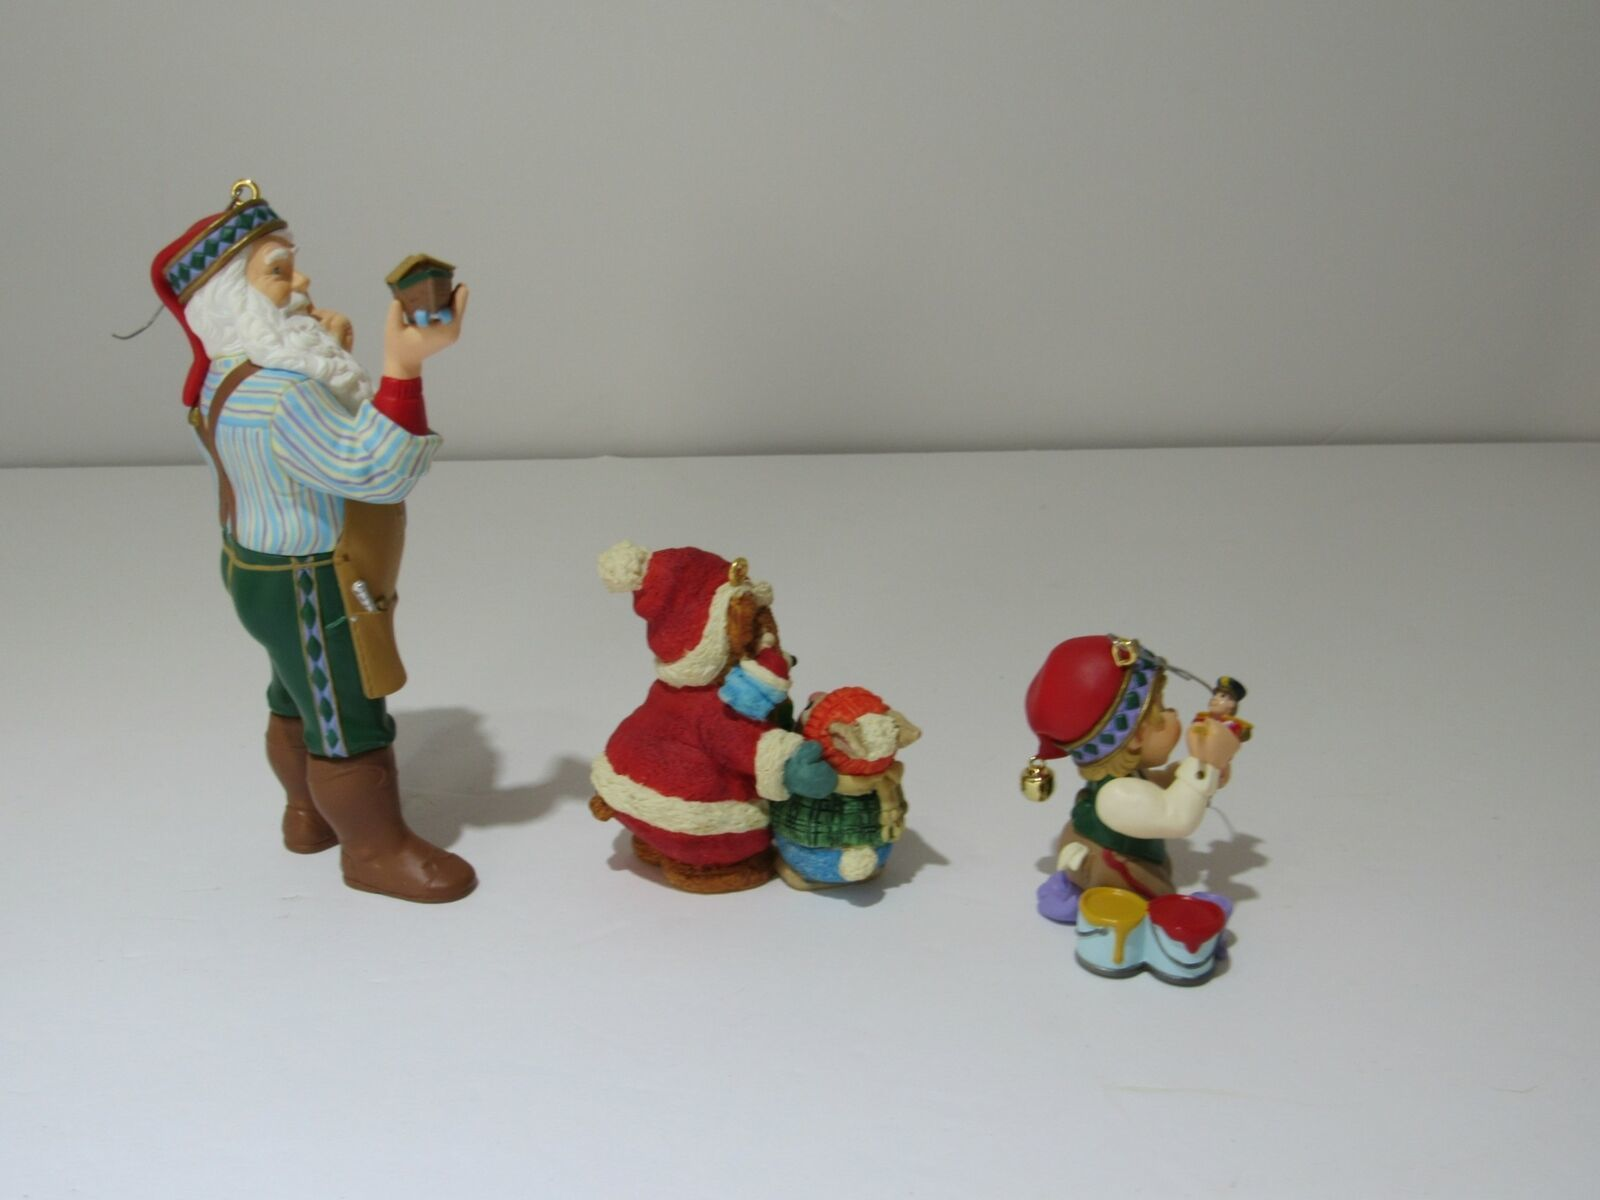 Lot of 3 1999 Hallmark Ornaments Arctic Artist, Mary's Bears, Toymakers Gift NIB image 5